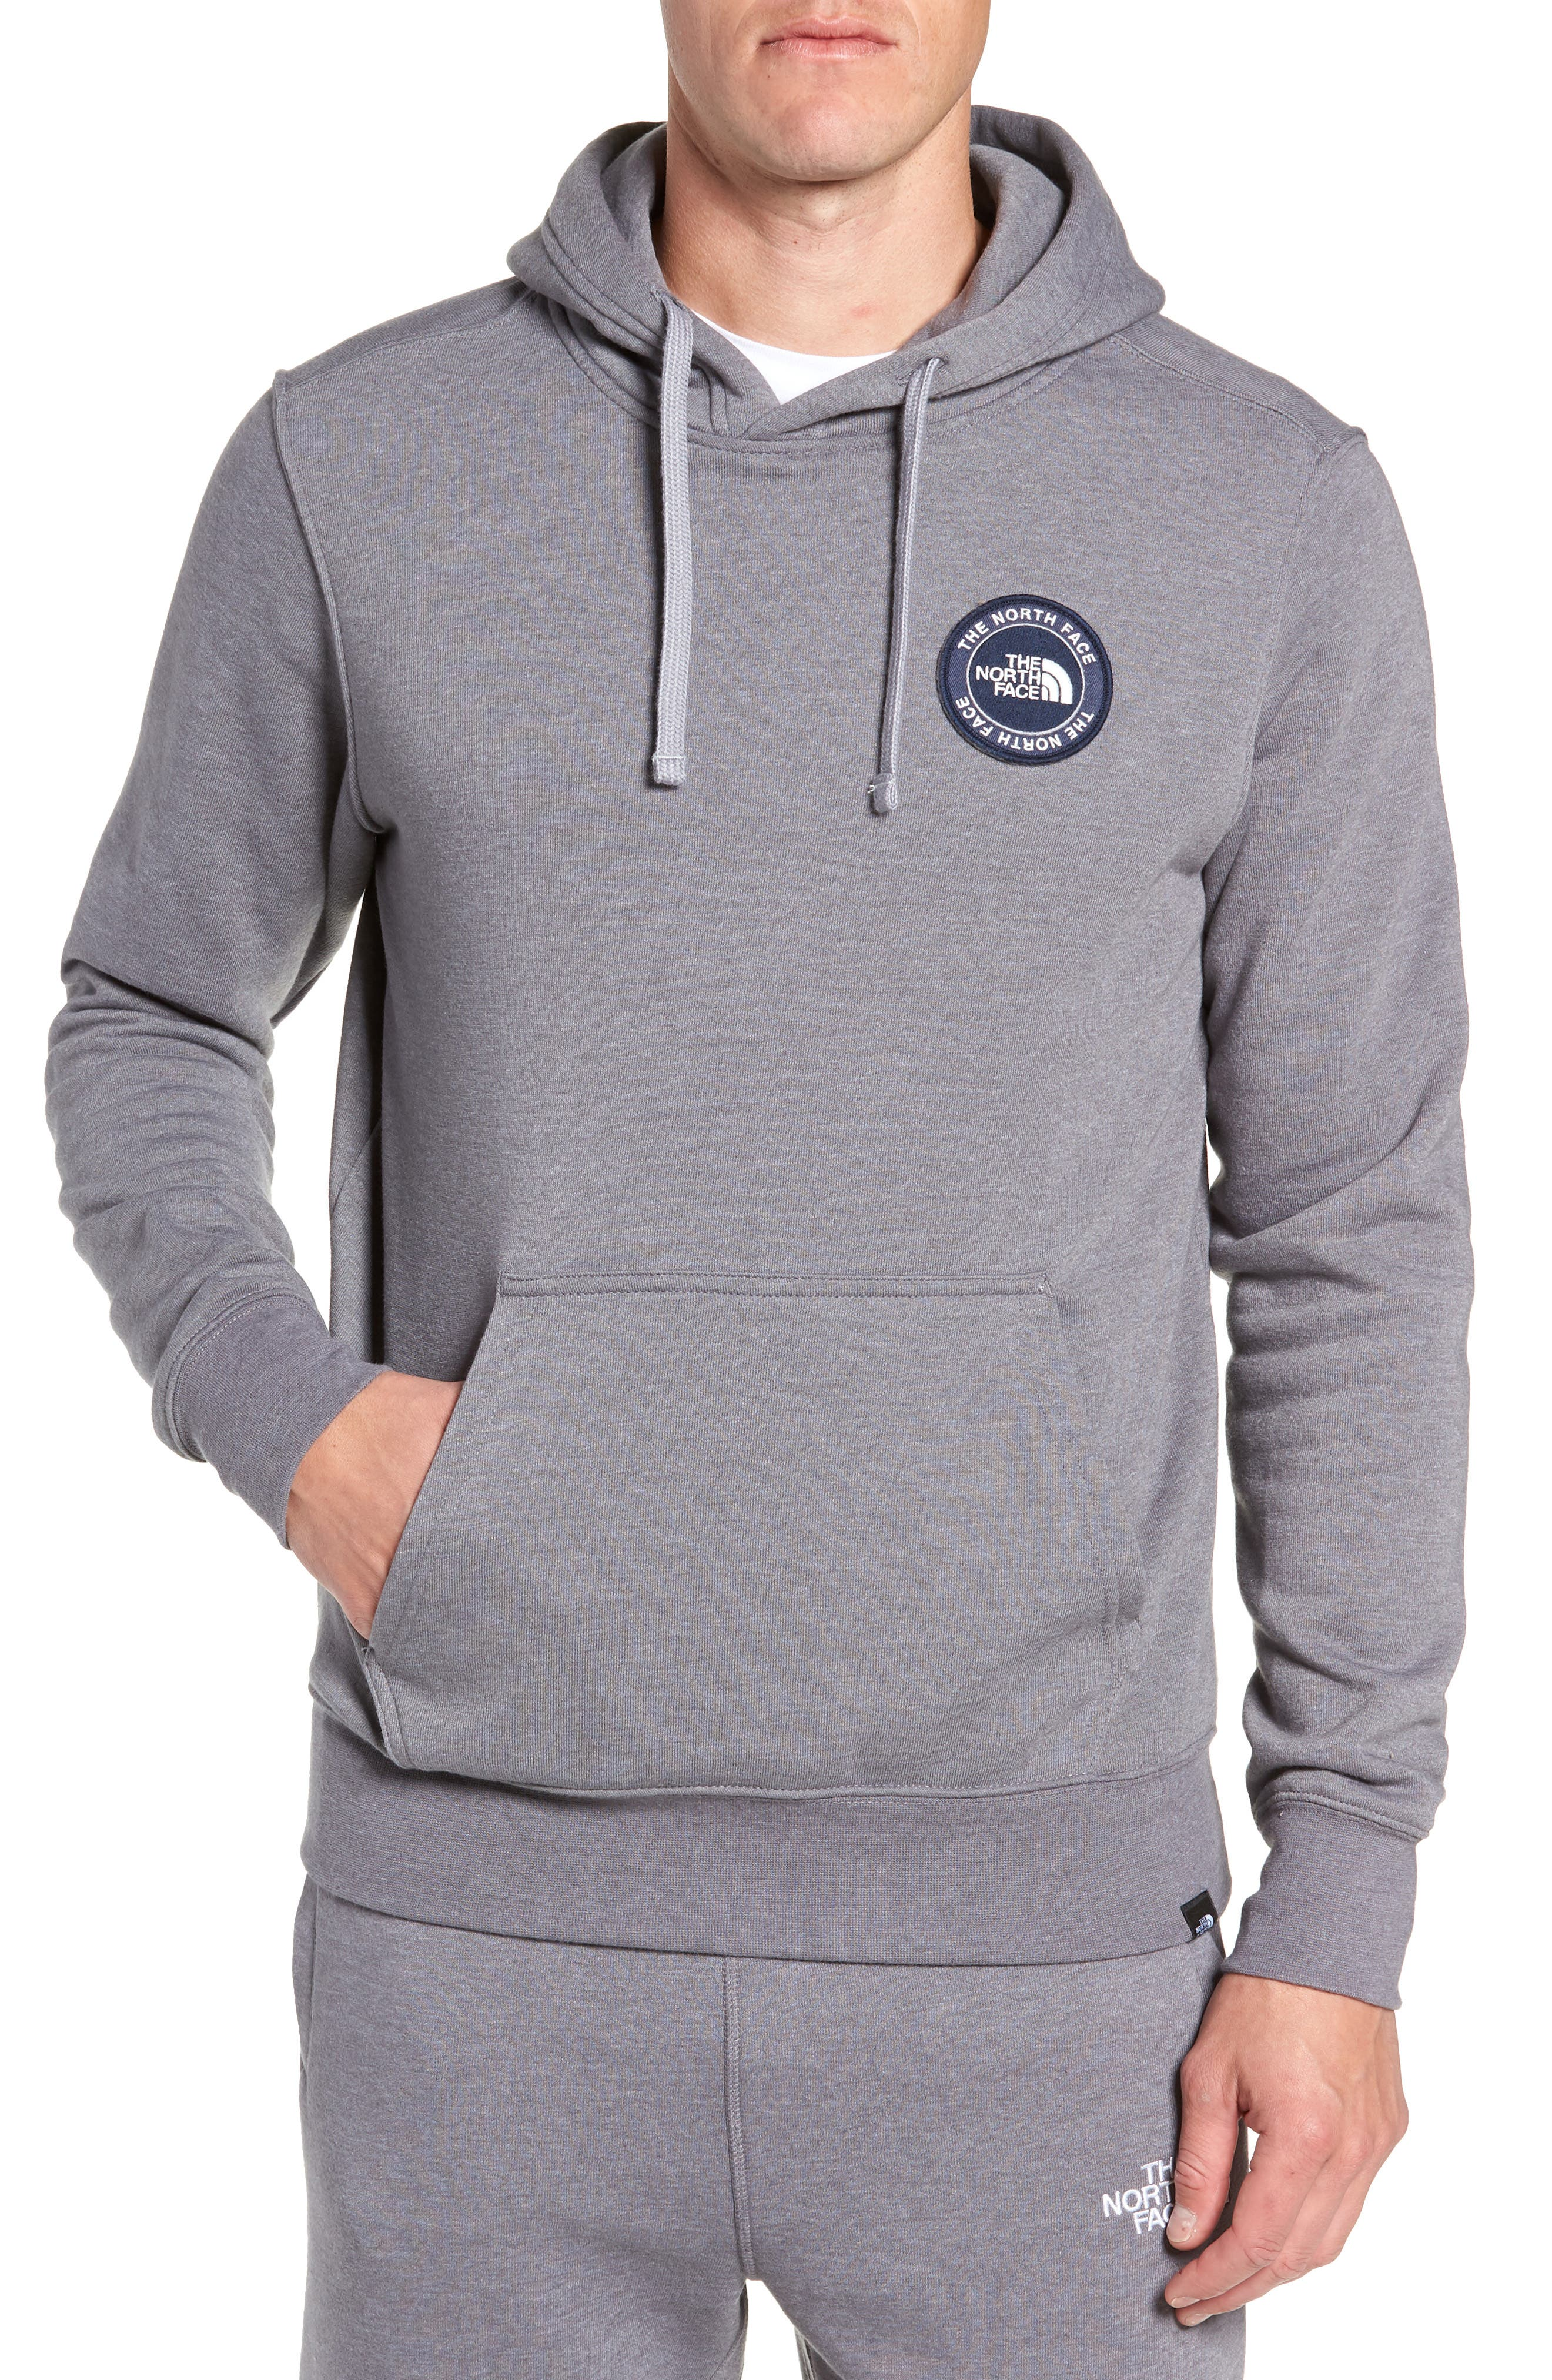 North Face Logo Patch Pullover Hoodie,                             Main thumbnail 1, color,                             TNF MEDIUM GREY HEATHER